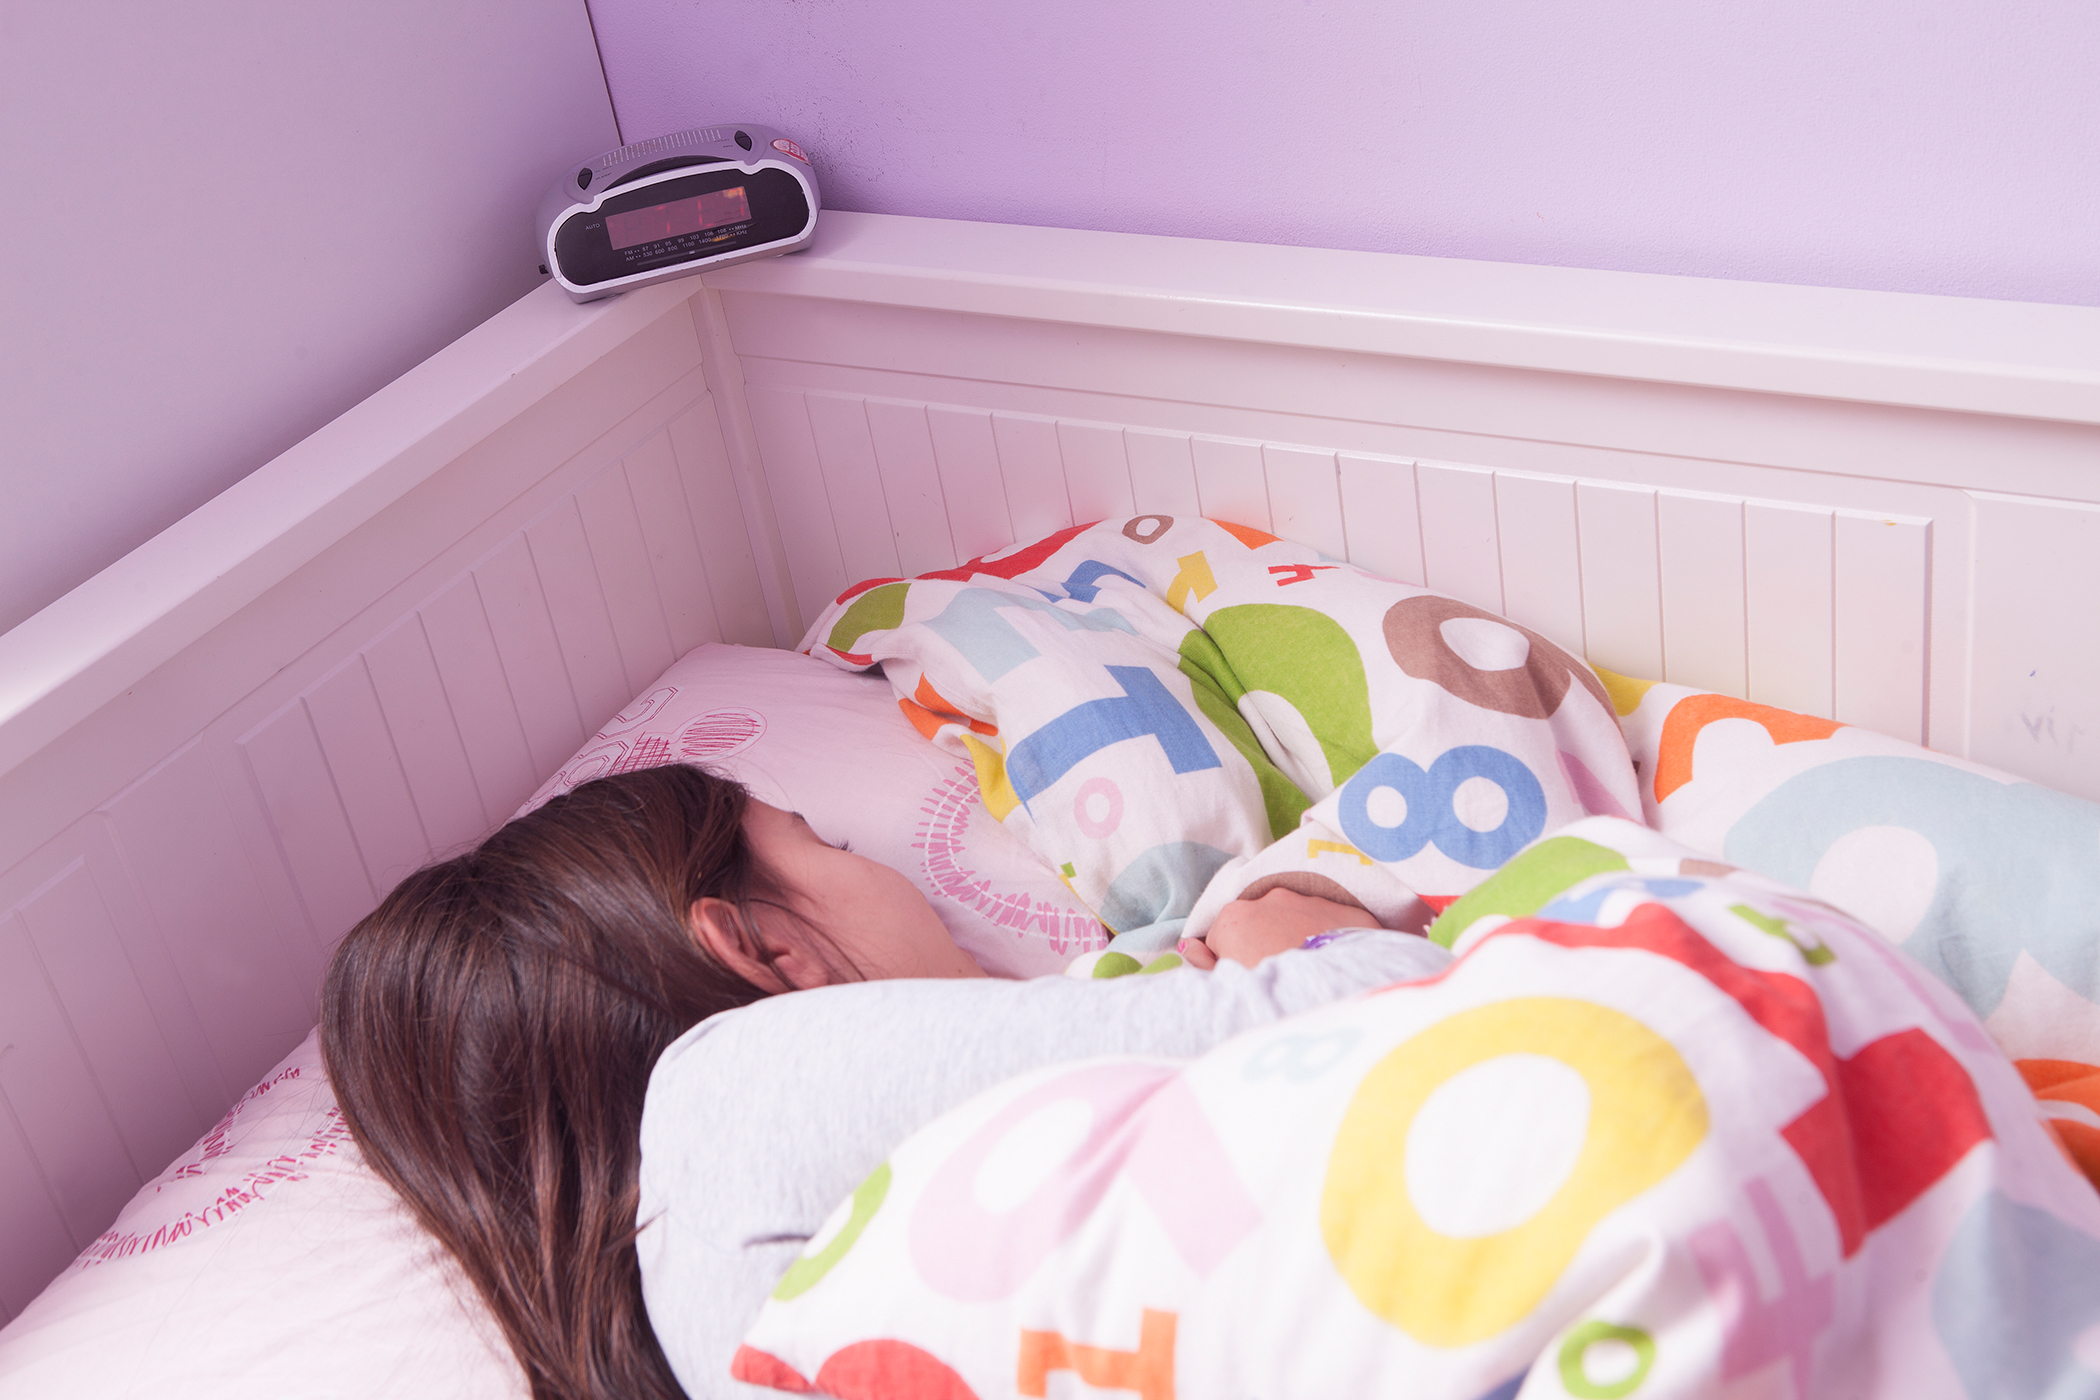 girl in bed sleeping with alarm clock